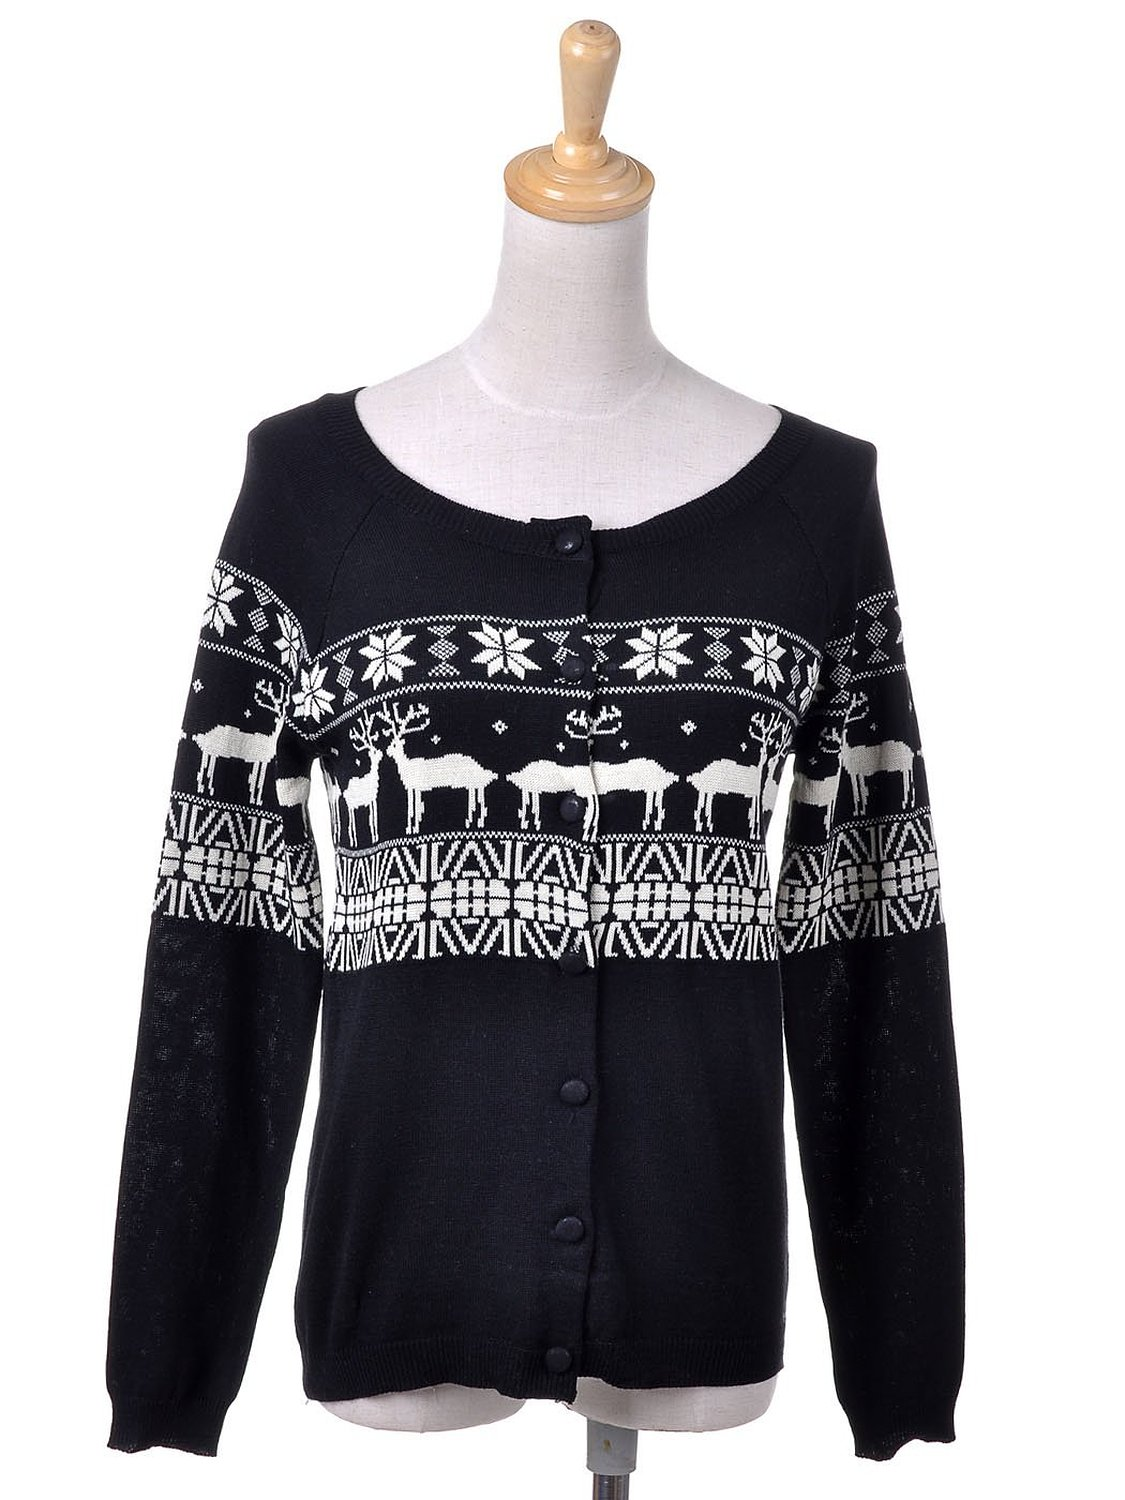 Kaci s/m fit black reindeer love snowflakes button up cardigan sweater at amazon women's clothing store: reindeer sweaters for women